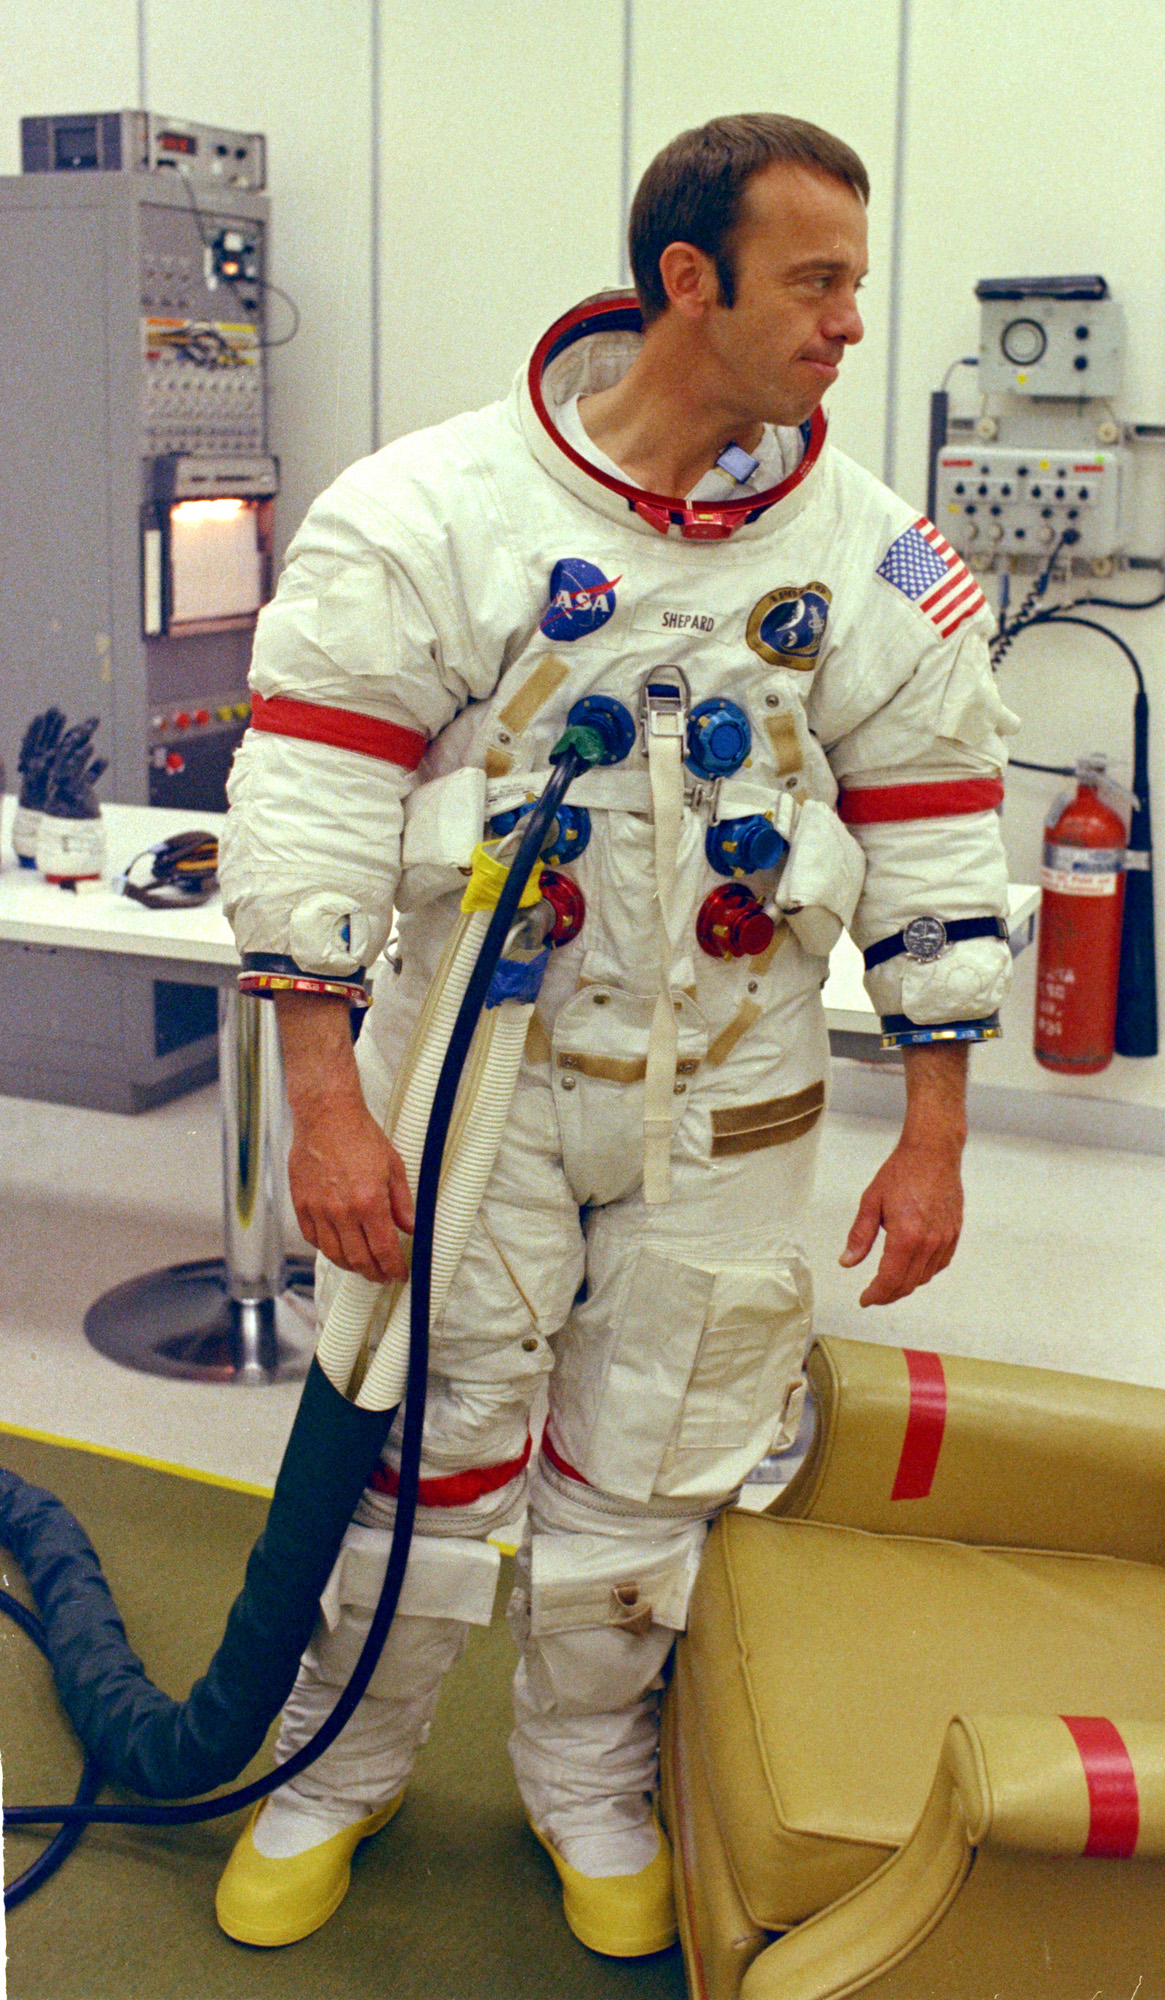 weight of apollo space suit - photo #27